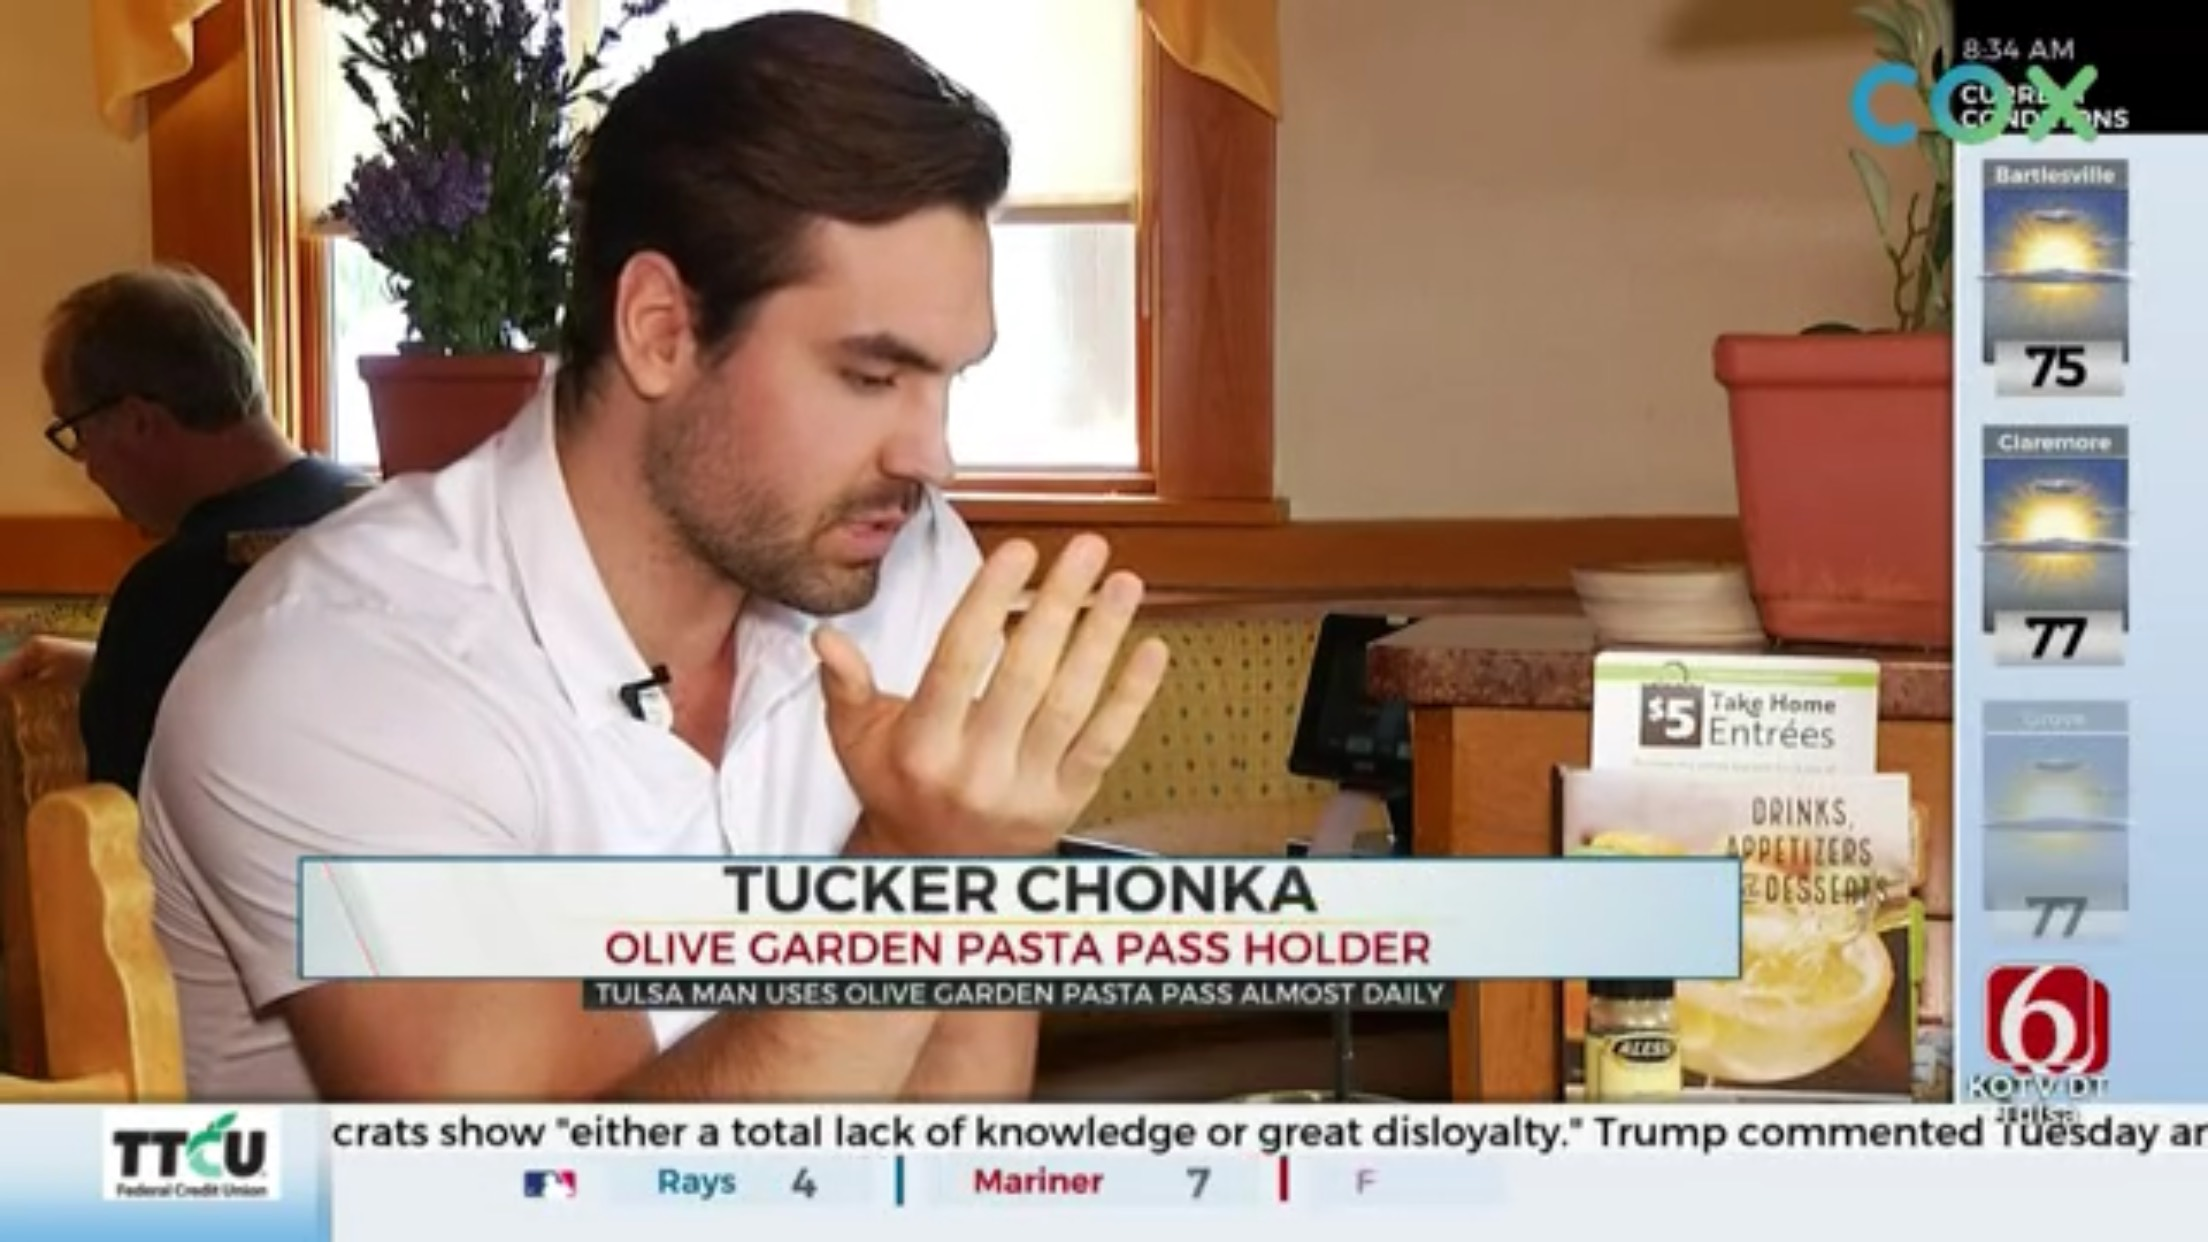 Tucker Chonka: Olive Garden Pasta Pass Holder